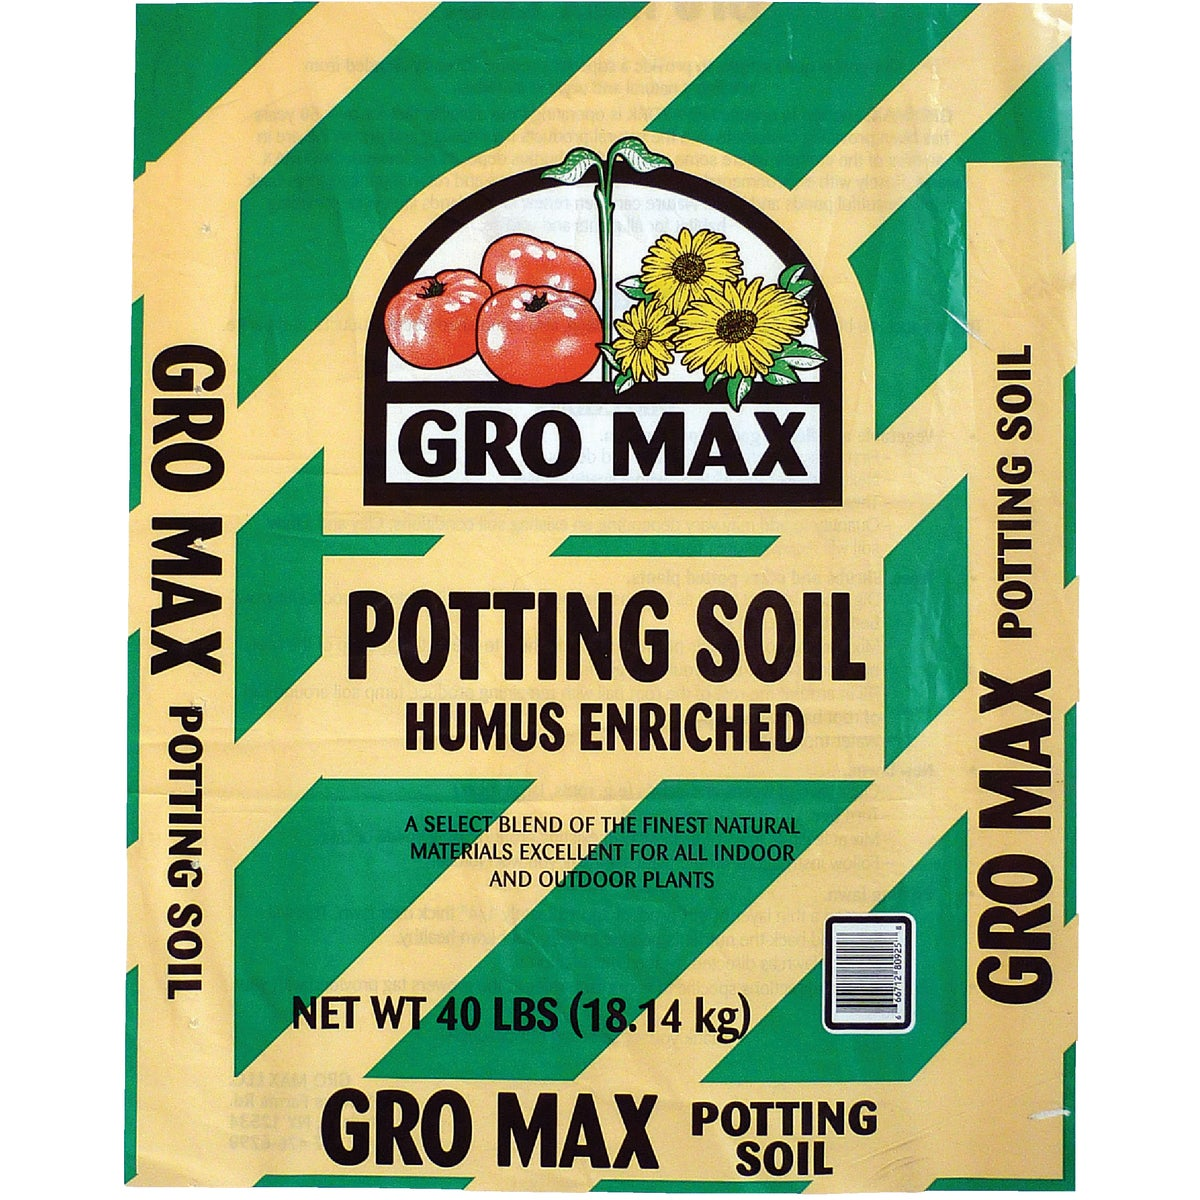 40LB POTTING SOIL